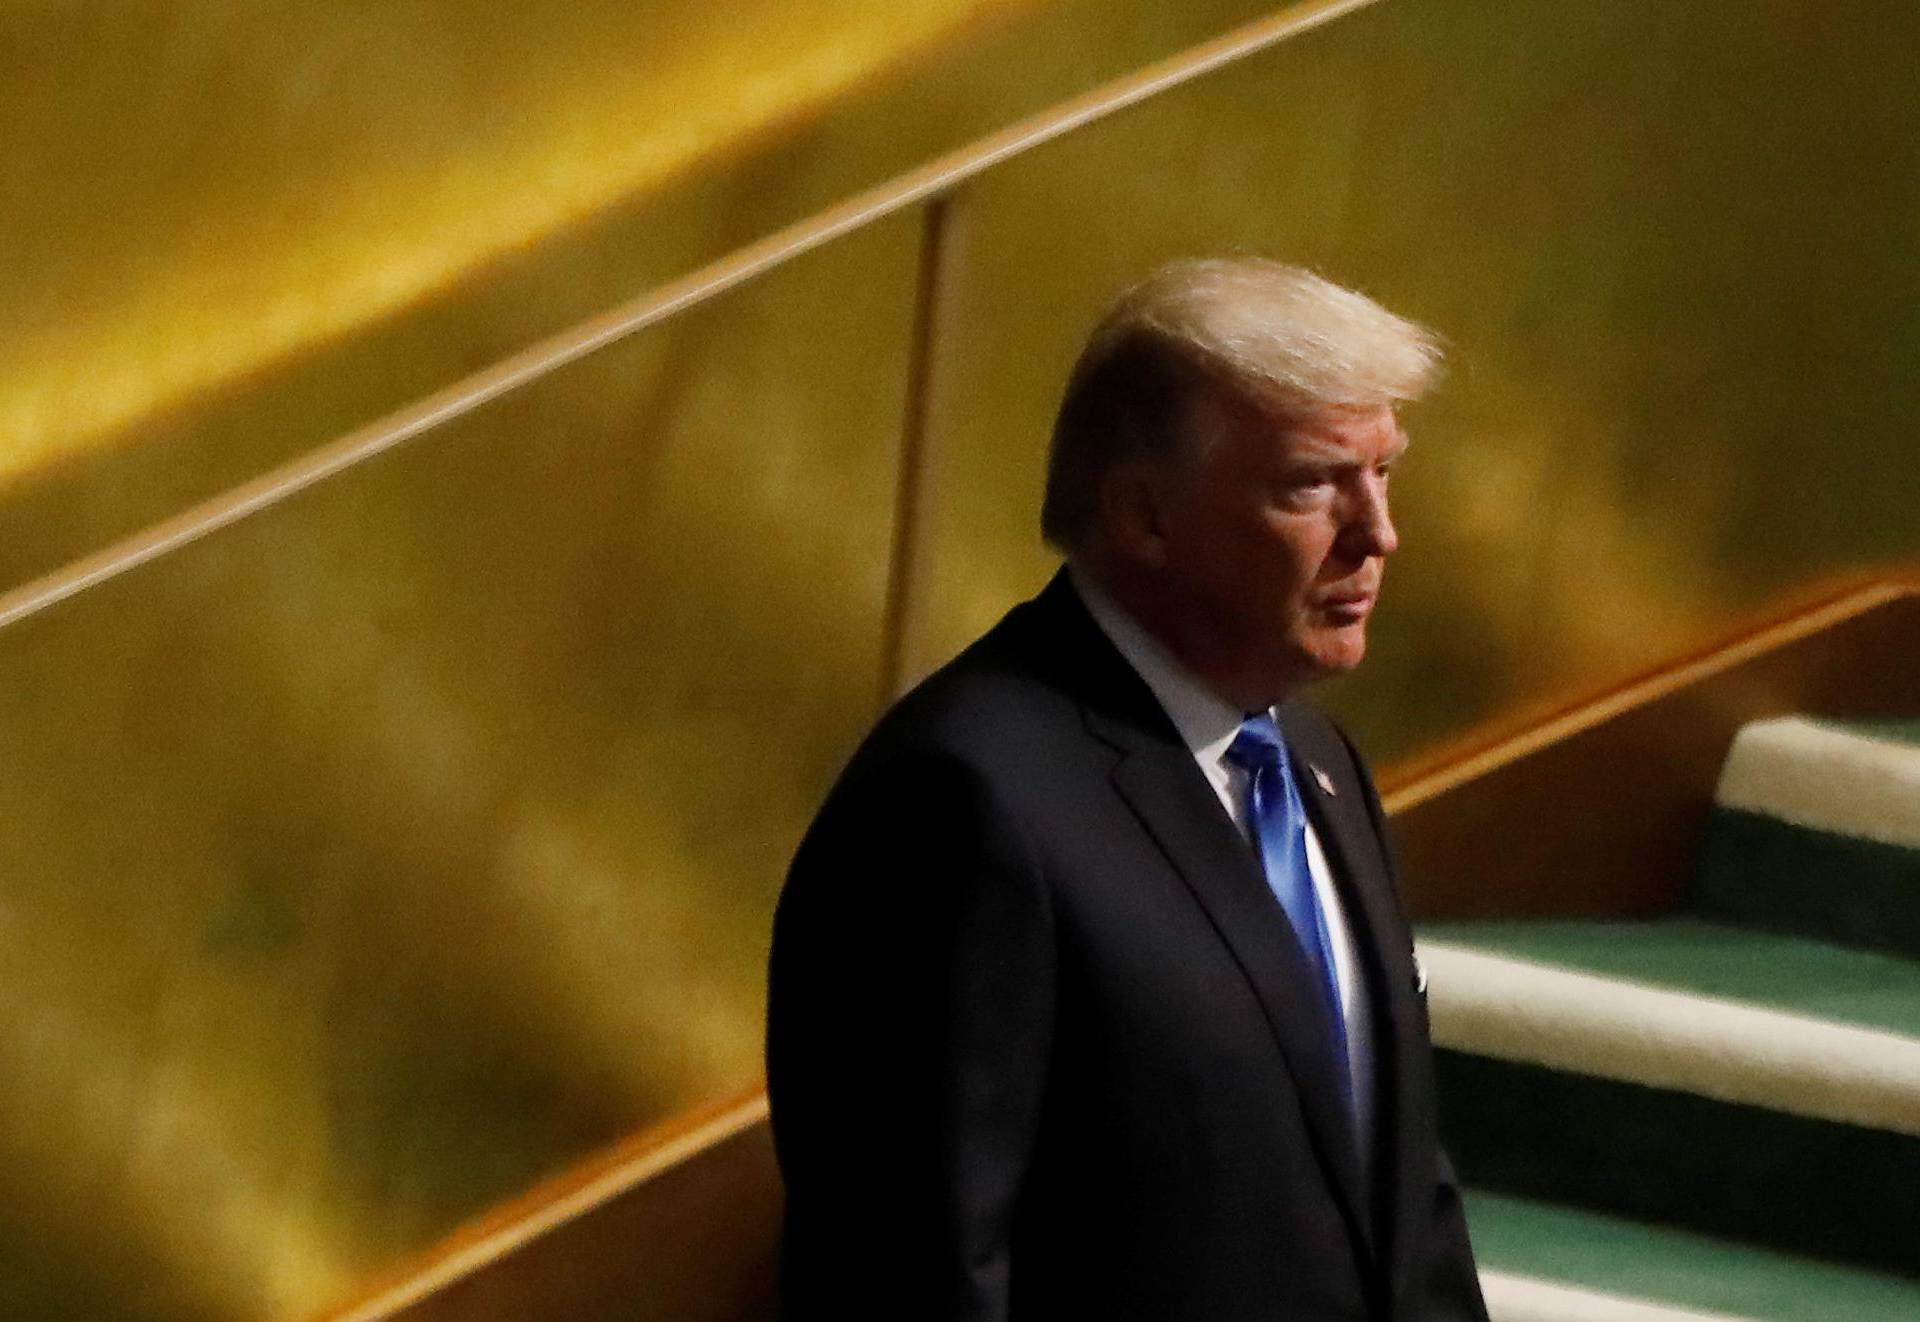 U.S. President Donald Trump arrives to address the 72nd United Nations General Assembly at U.N. headquarters in New York